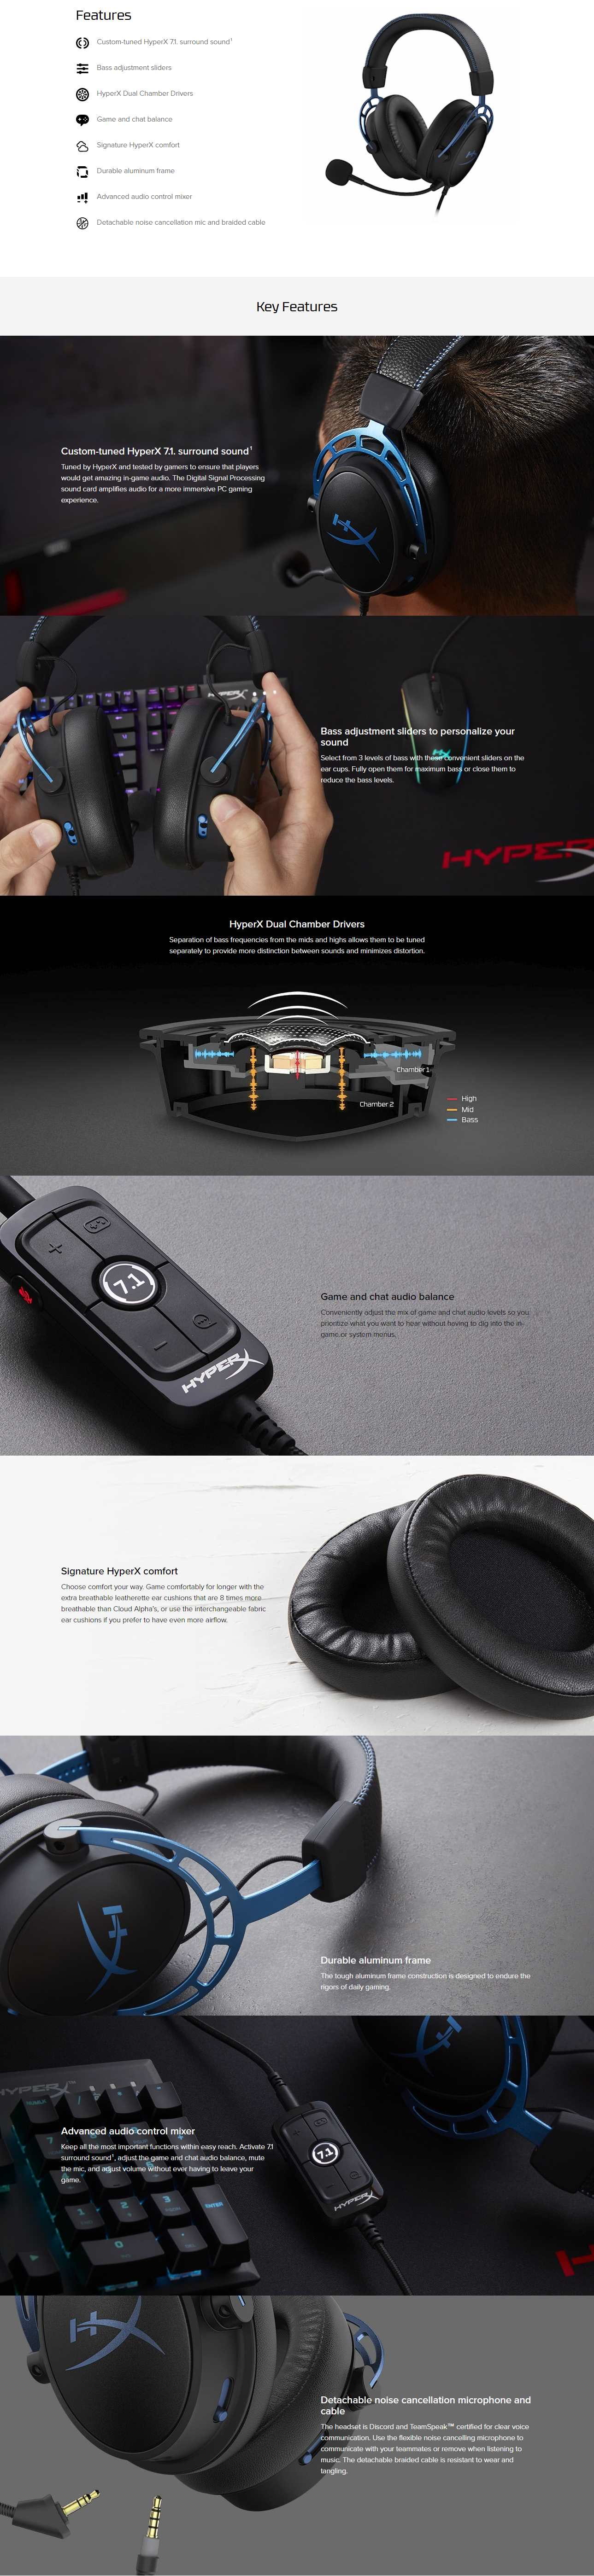 A large marketing image providing additional information about the product Kingston HyperX Cloud Alpha S Gaming Headset - Additional alt info not provided